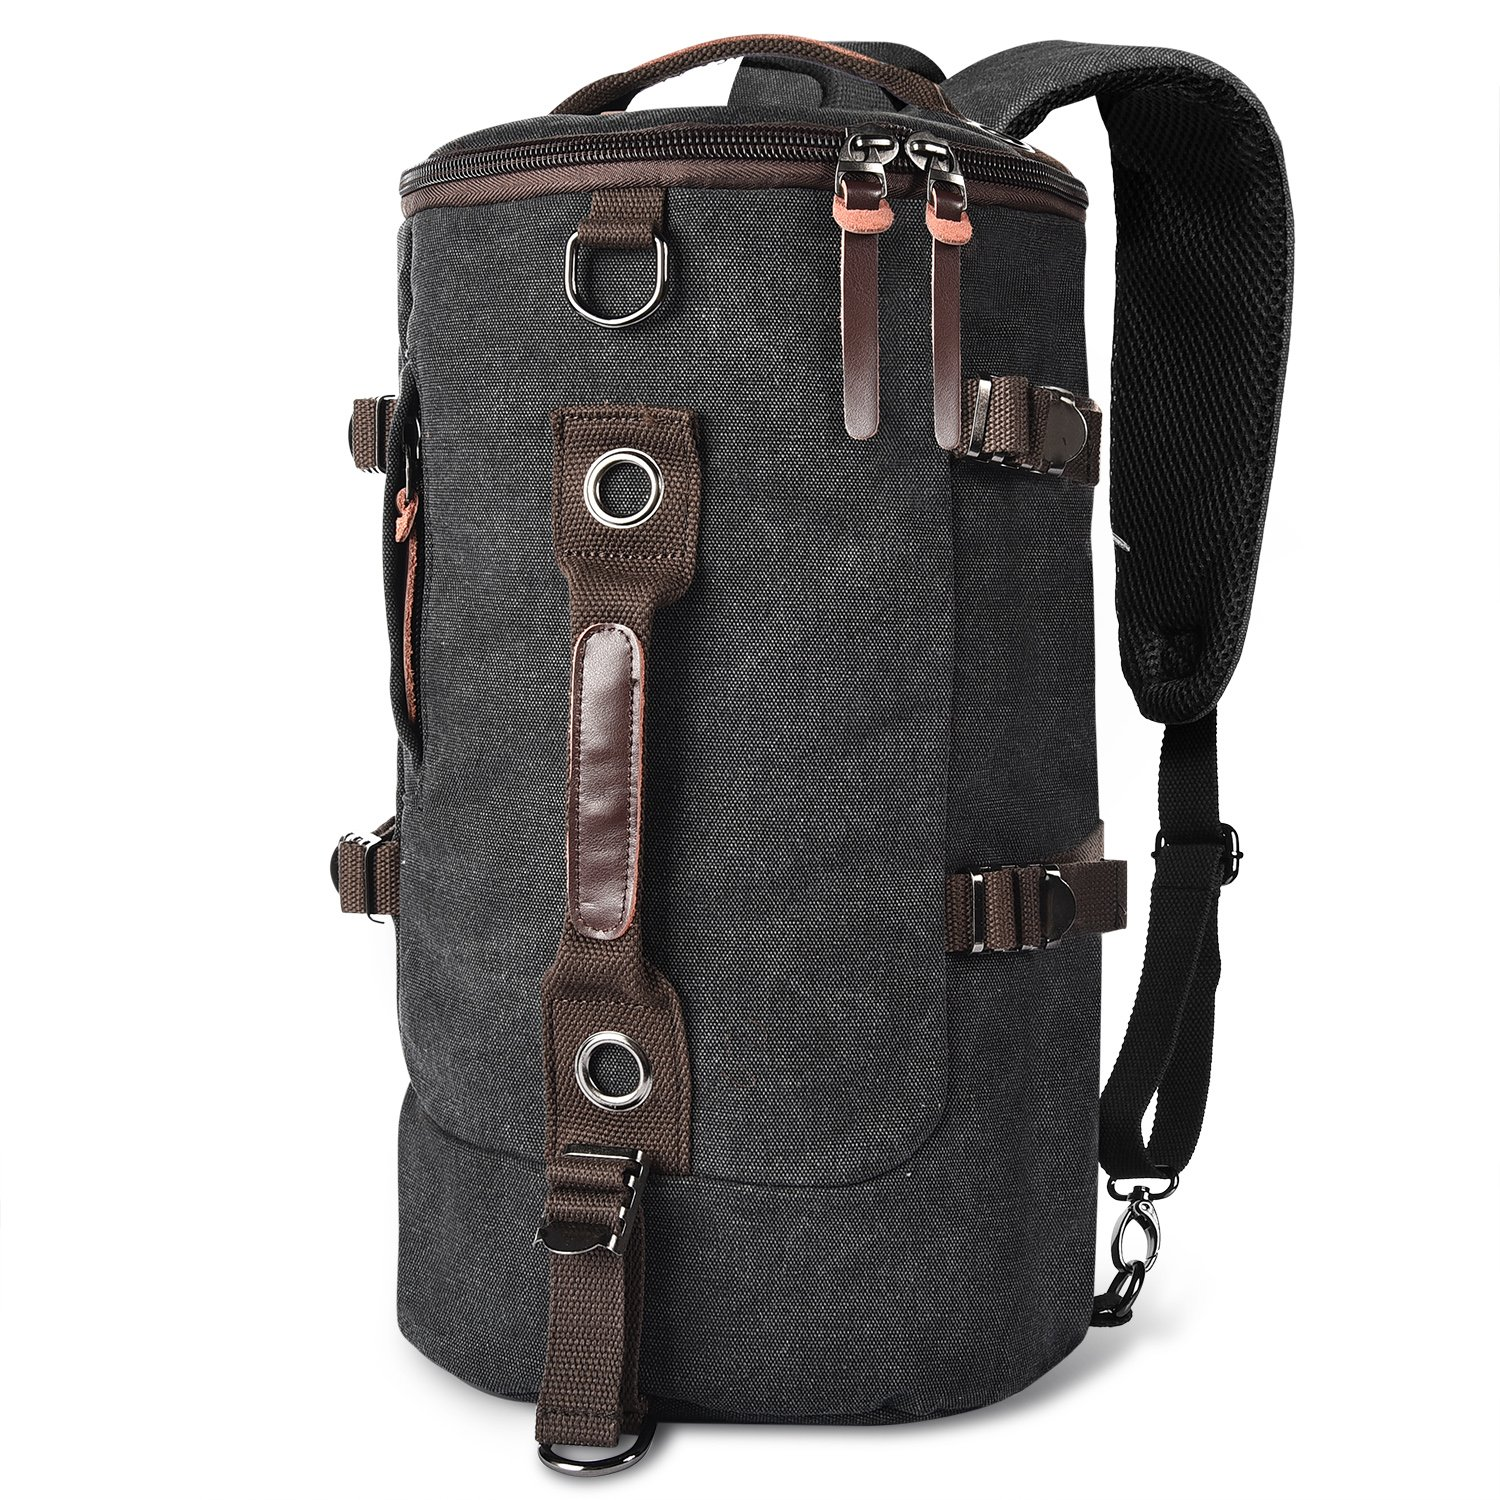 LUXUR Retro Duffel Cylinder Bag 26L Canvas Travel Backpack for Men Hiking Luggage Weekend Bag taipai LUX-1